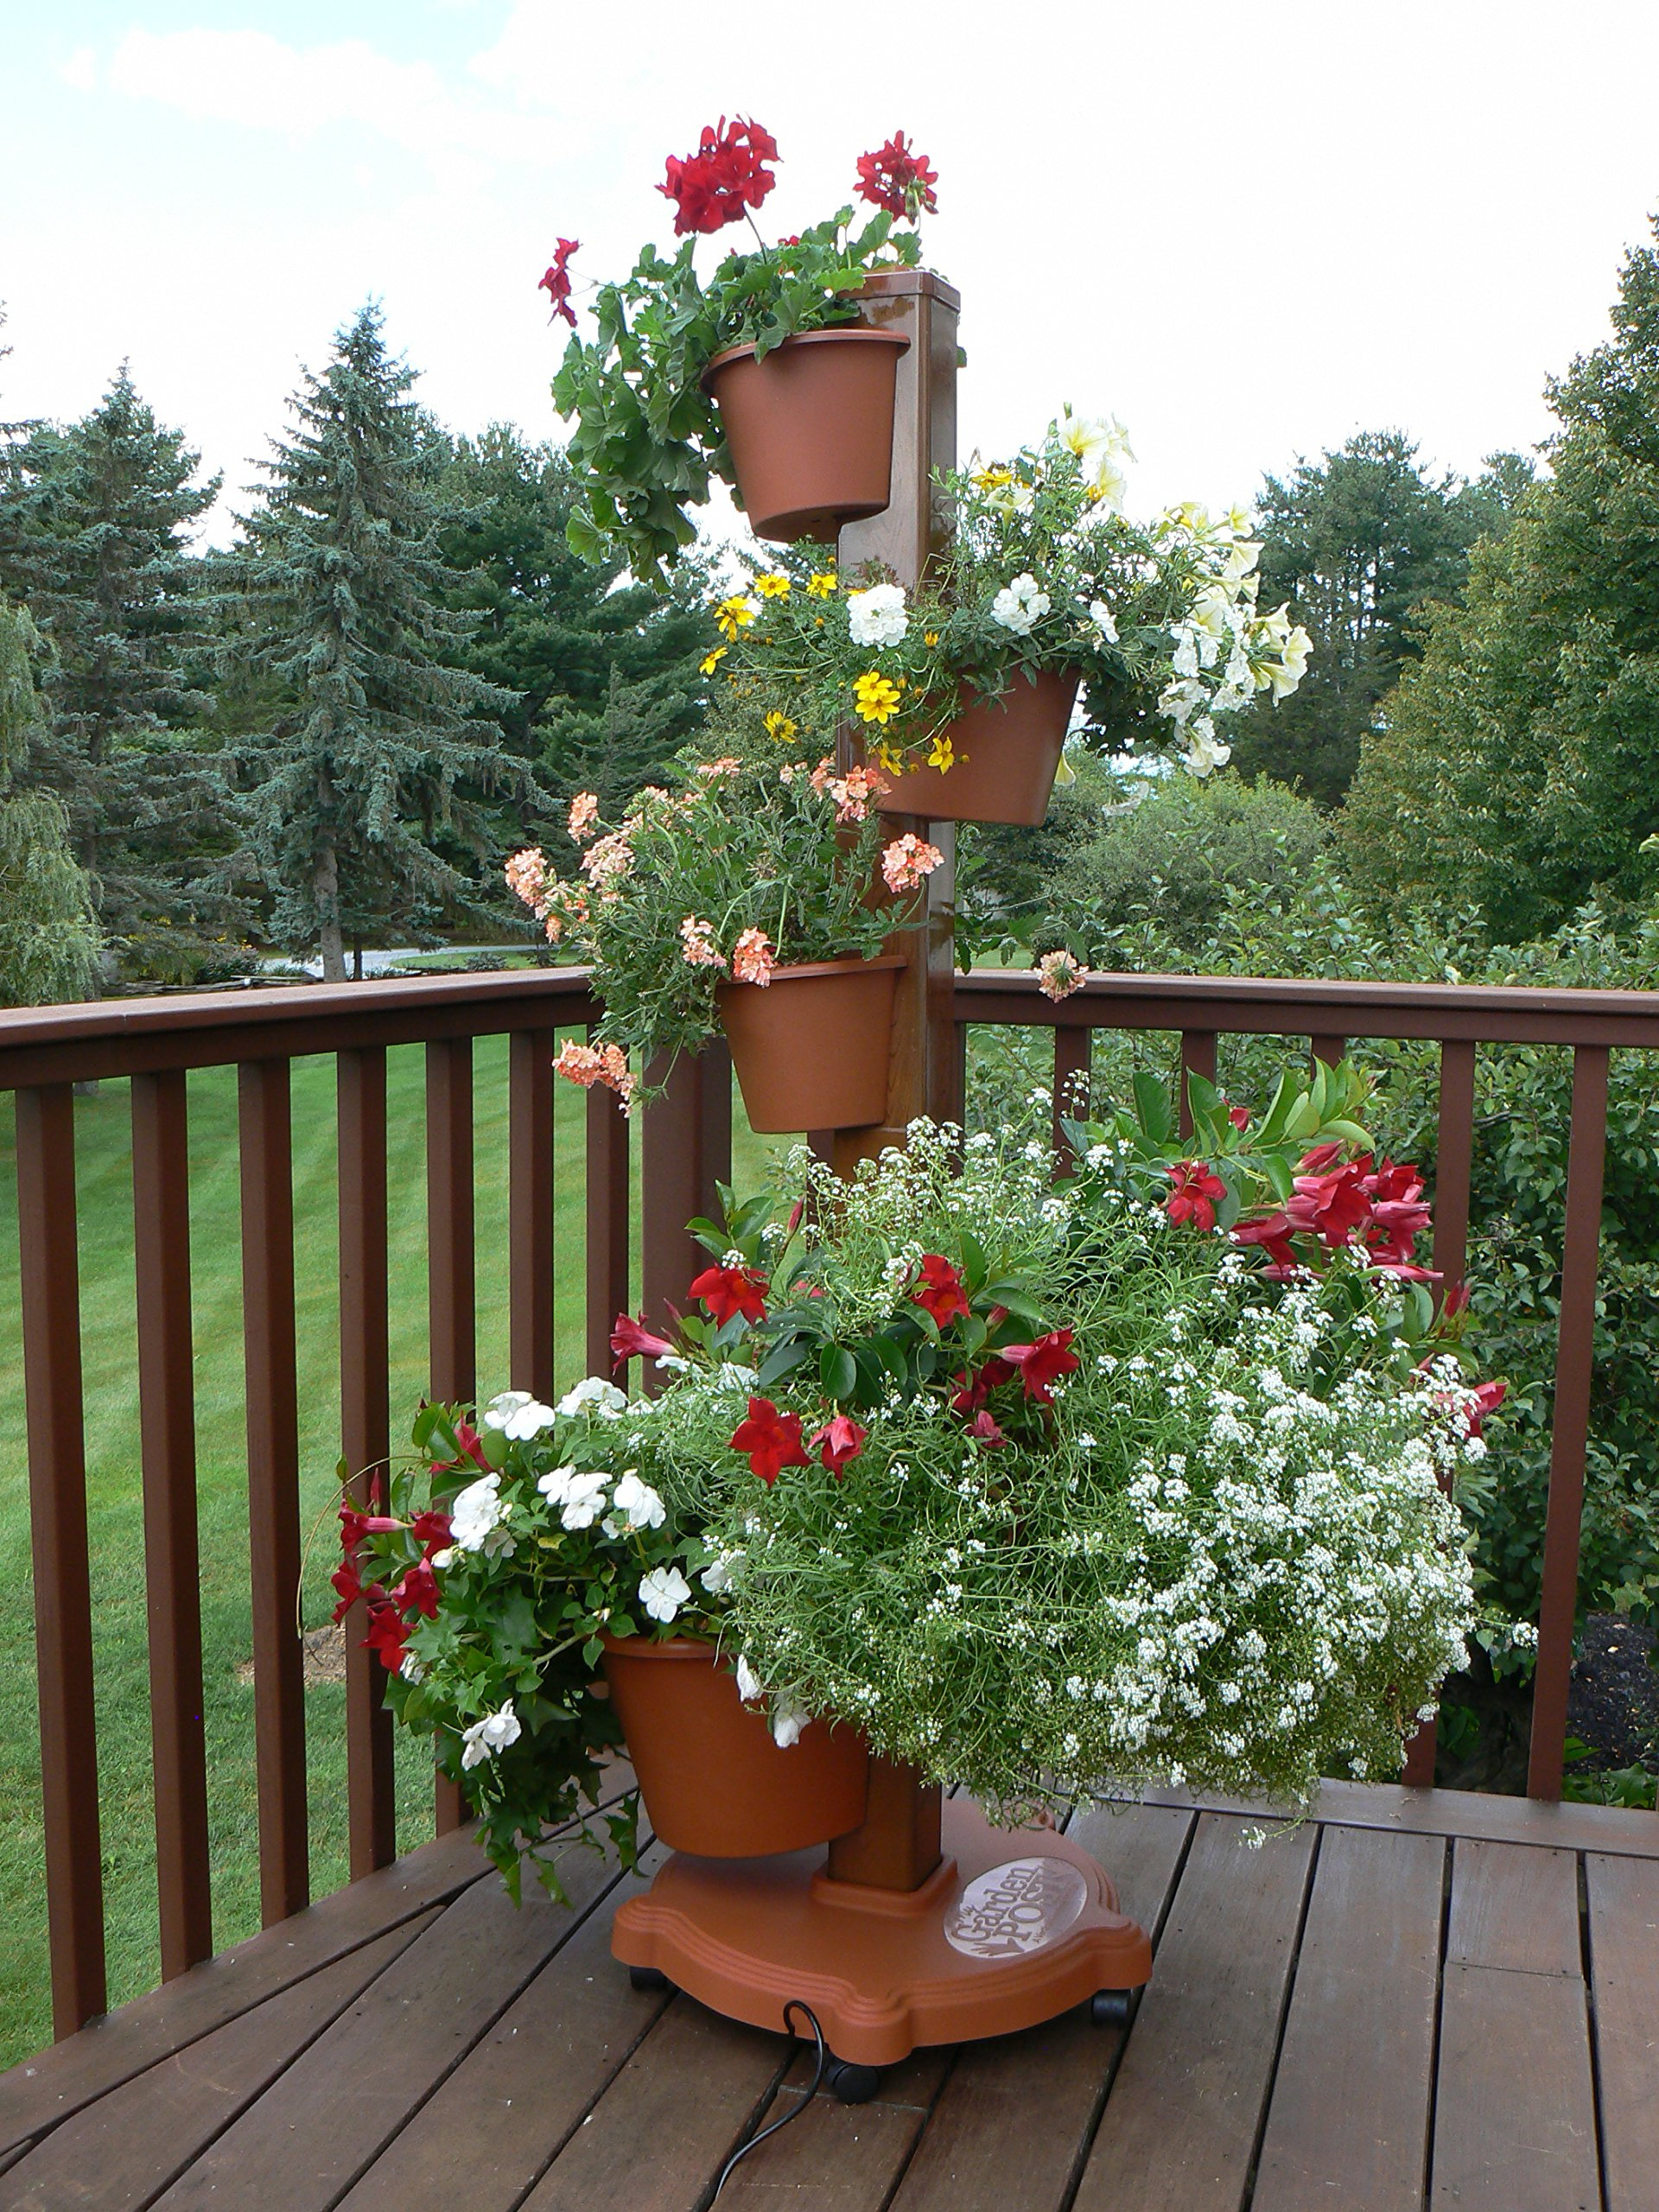 My Garden Post 5 Planter Vertical Gardening System with Drip Irrigation Finish, Terracotta by My Garden Post